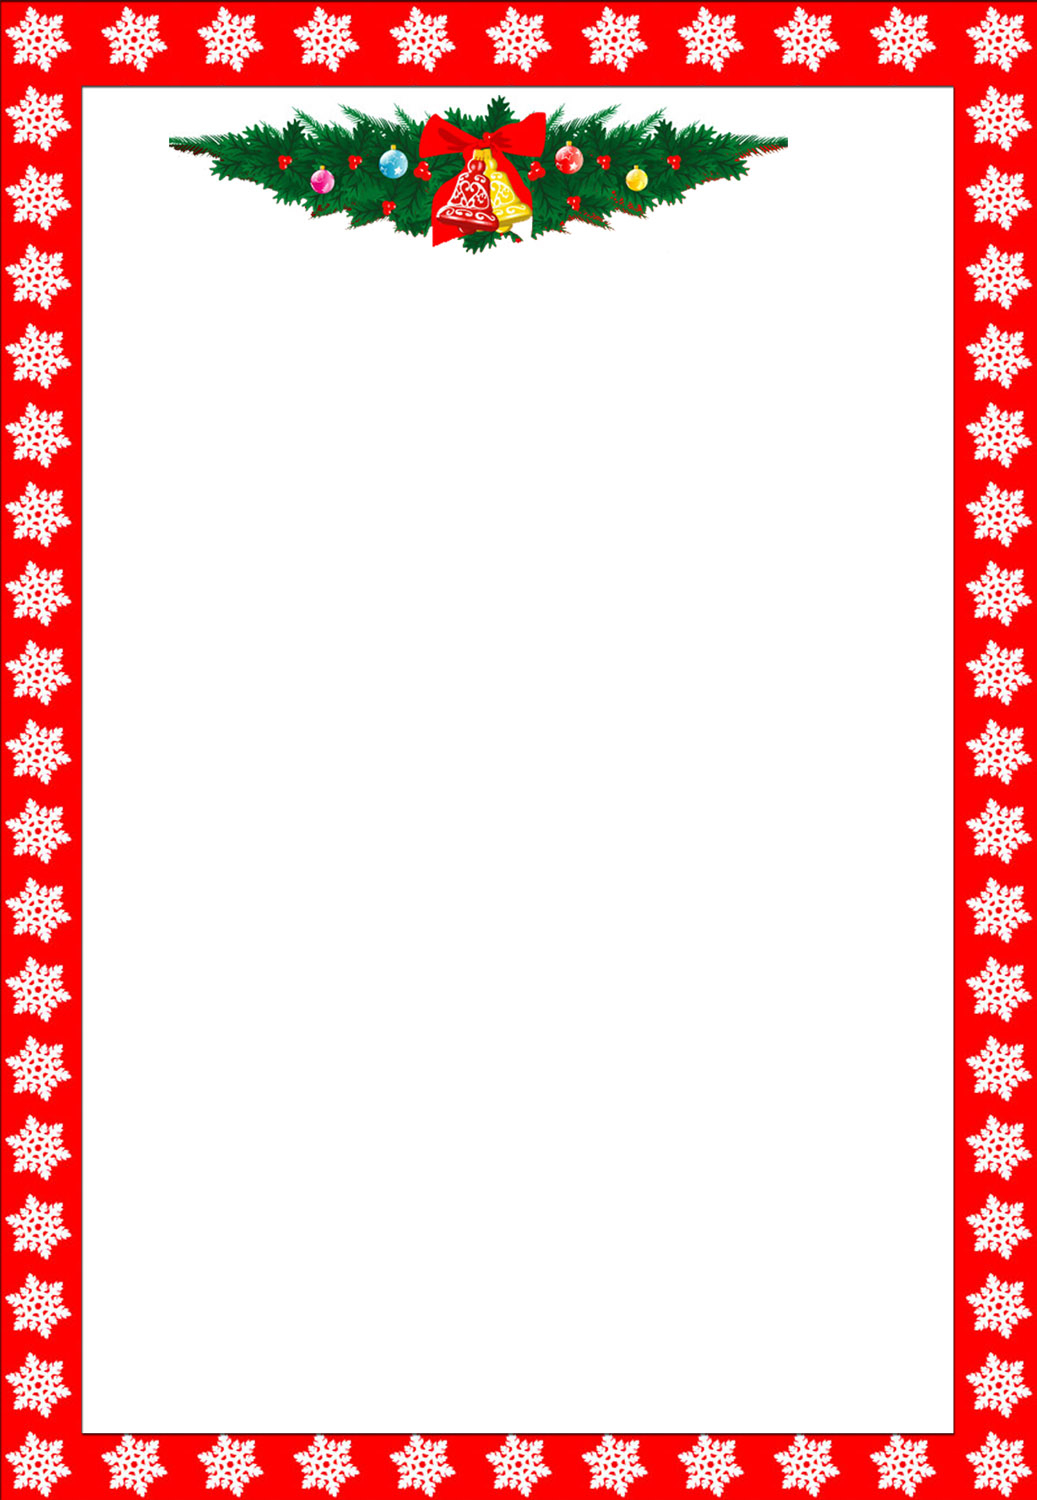 Free Printable Christmas Stationary Borders Trials Ireland - Free Printable Page Borders Christmas